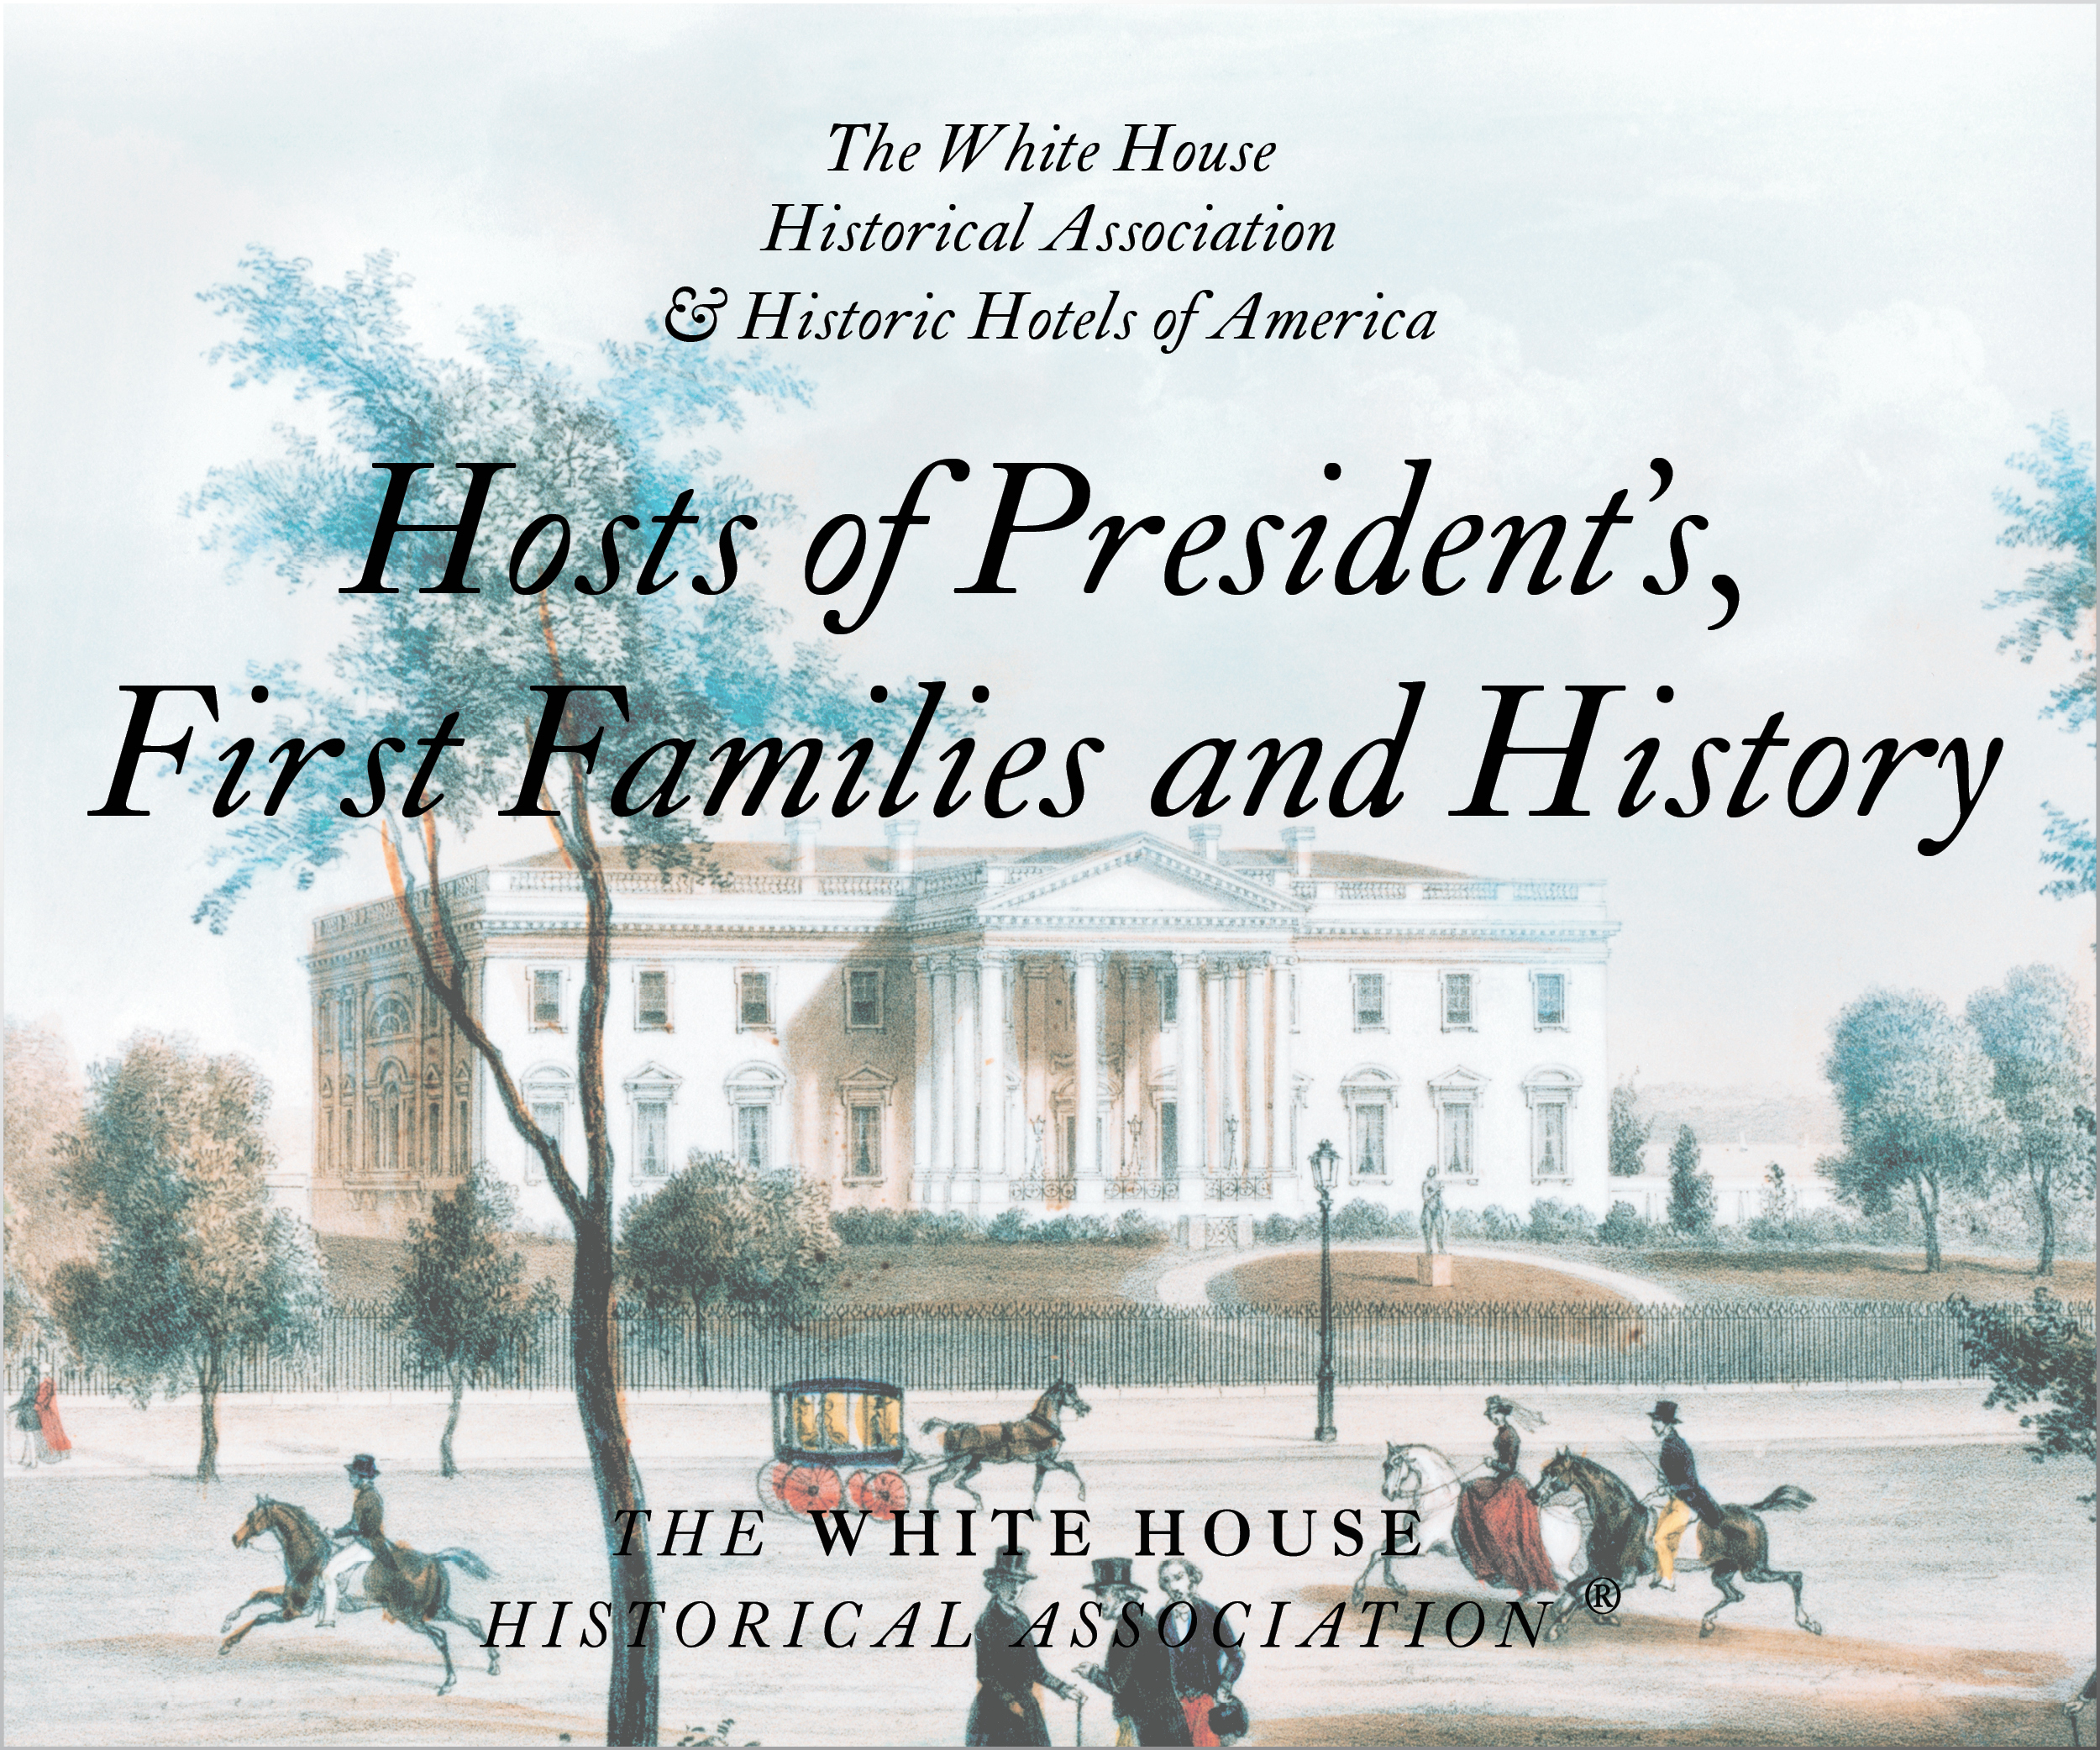 White House History and Historic Hotels of America, U.S. Presidents and First Ladies